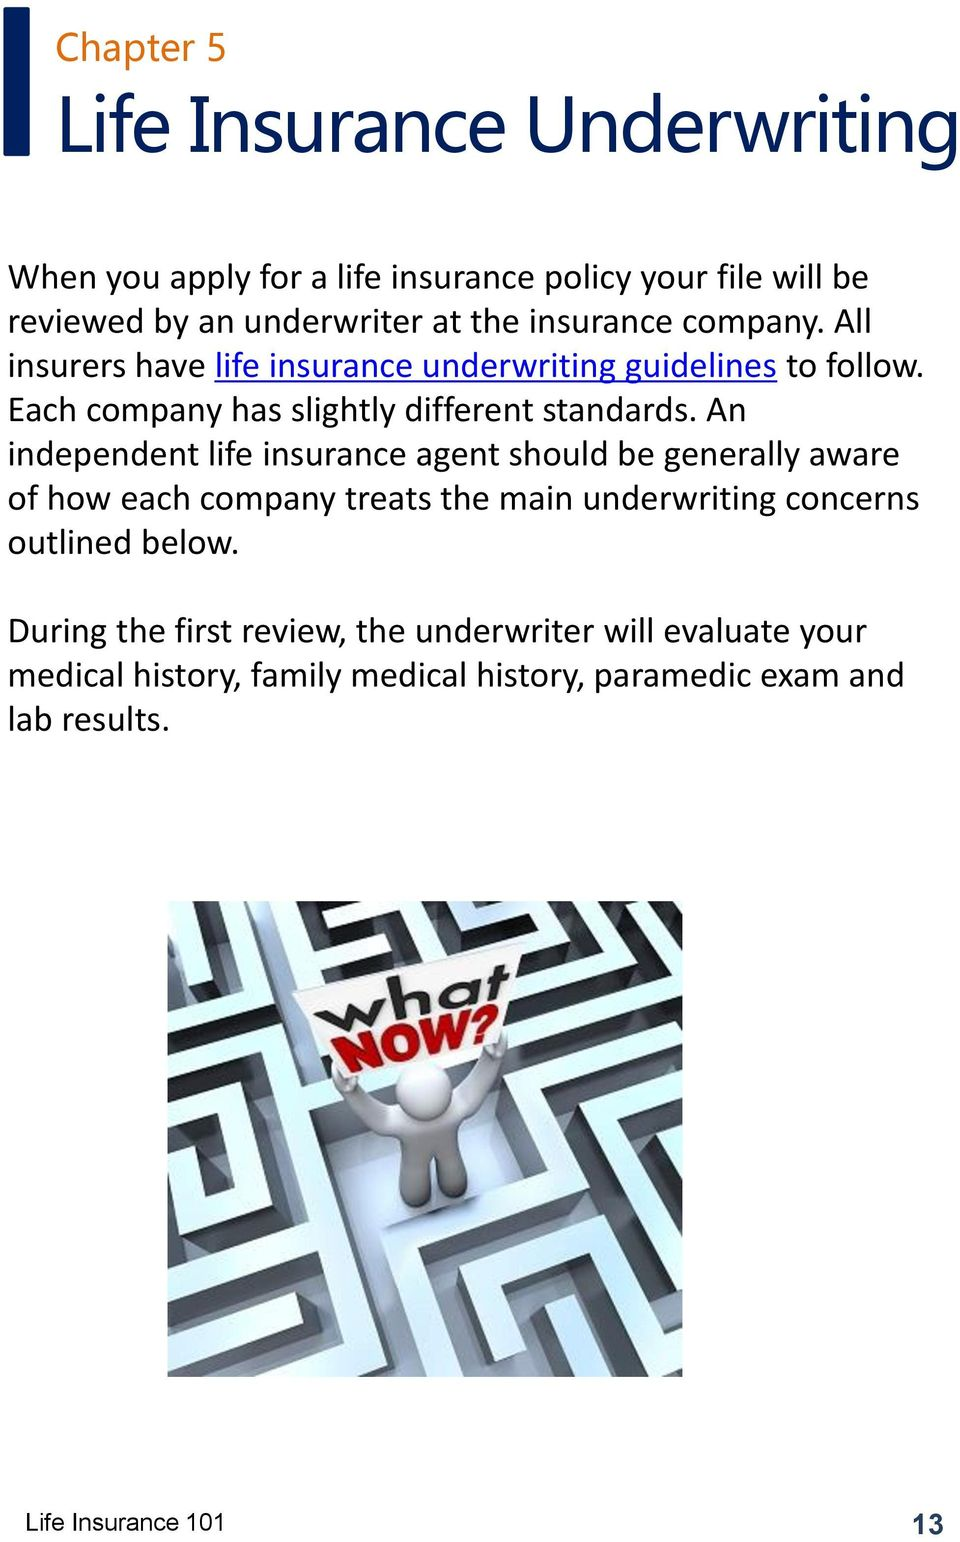 An independent life insurance agent should be generally aware of how each company treats the main underwriting concerns outlined below.